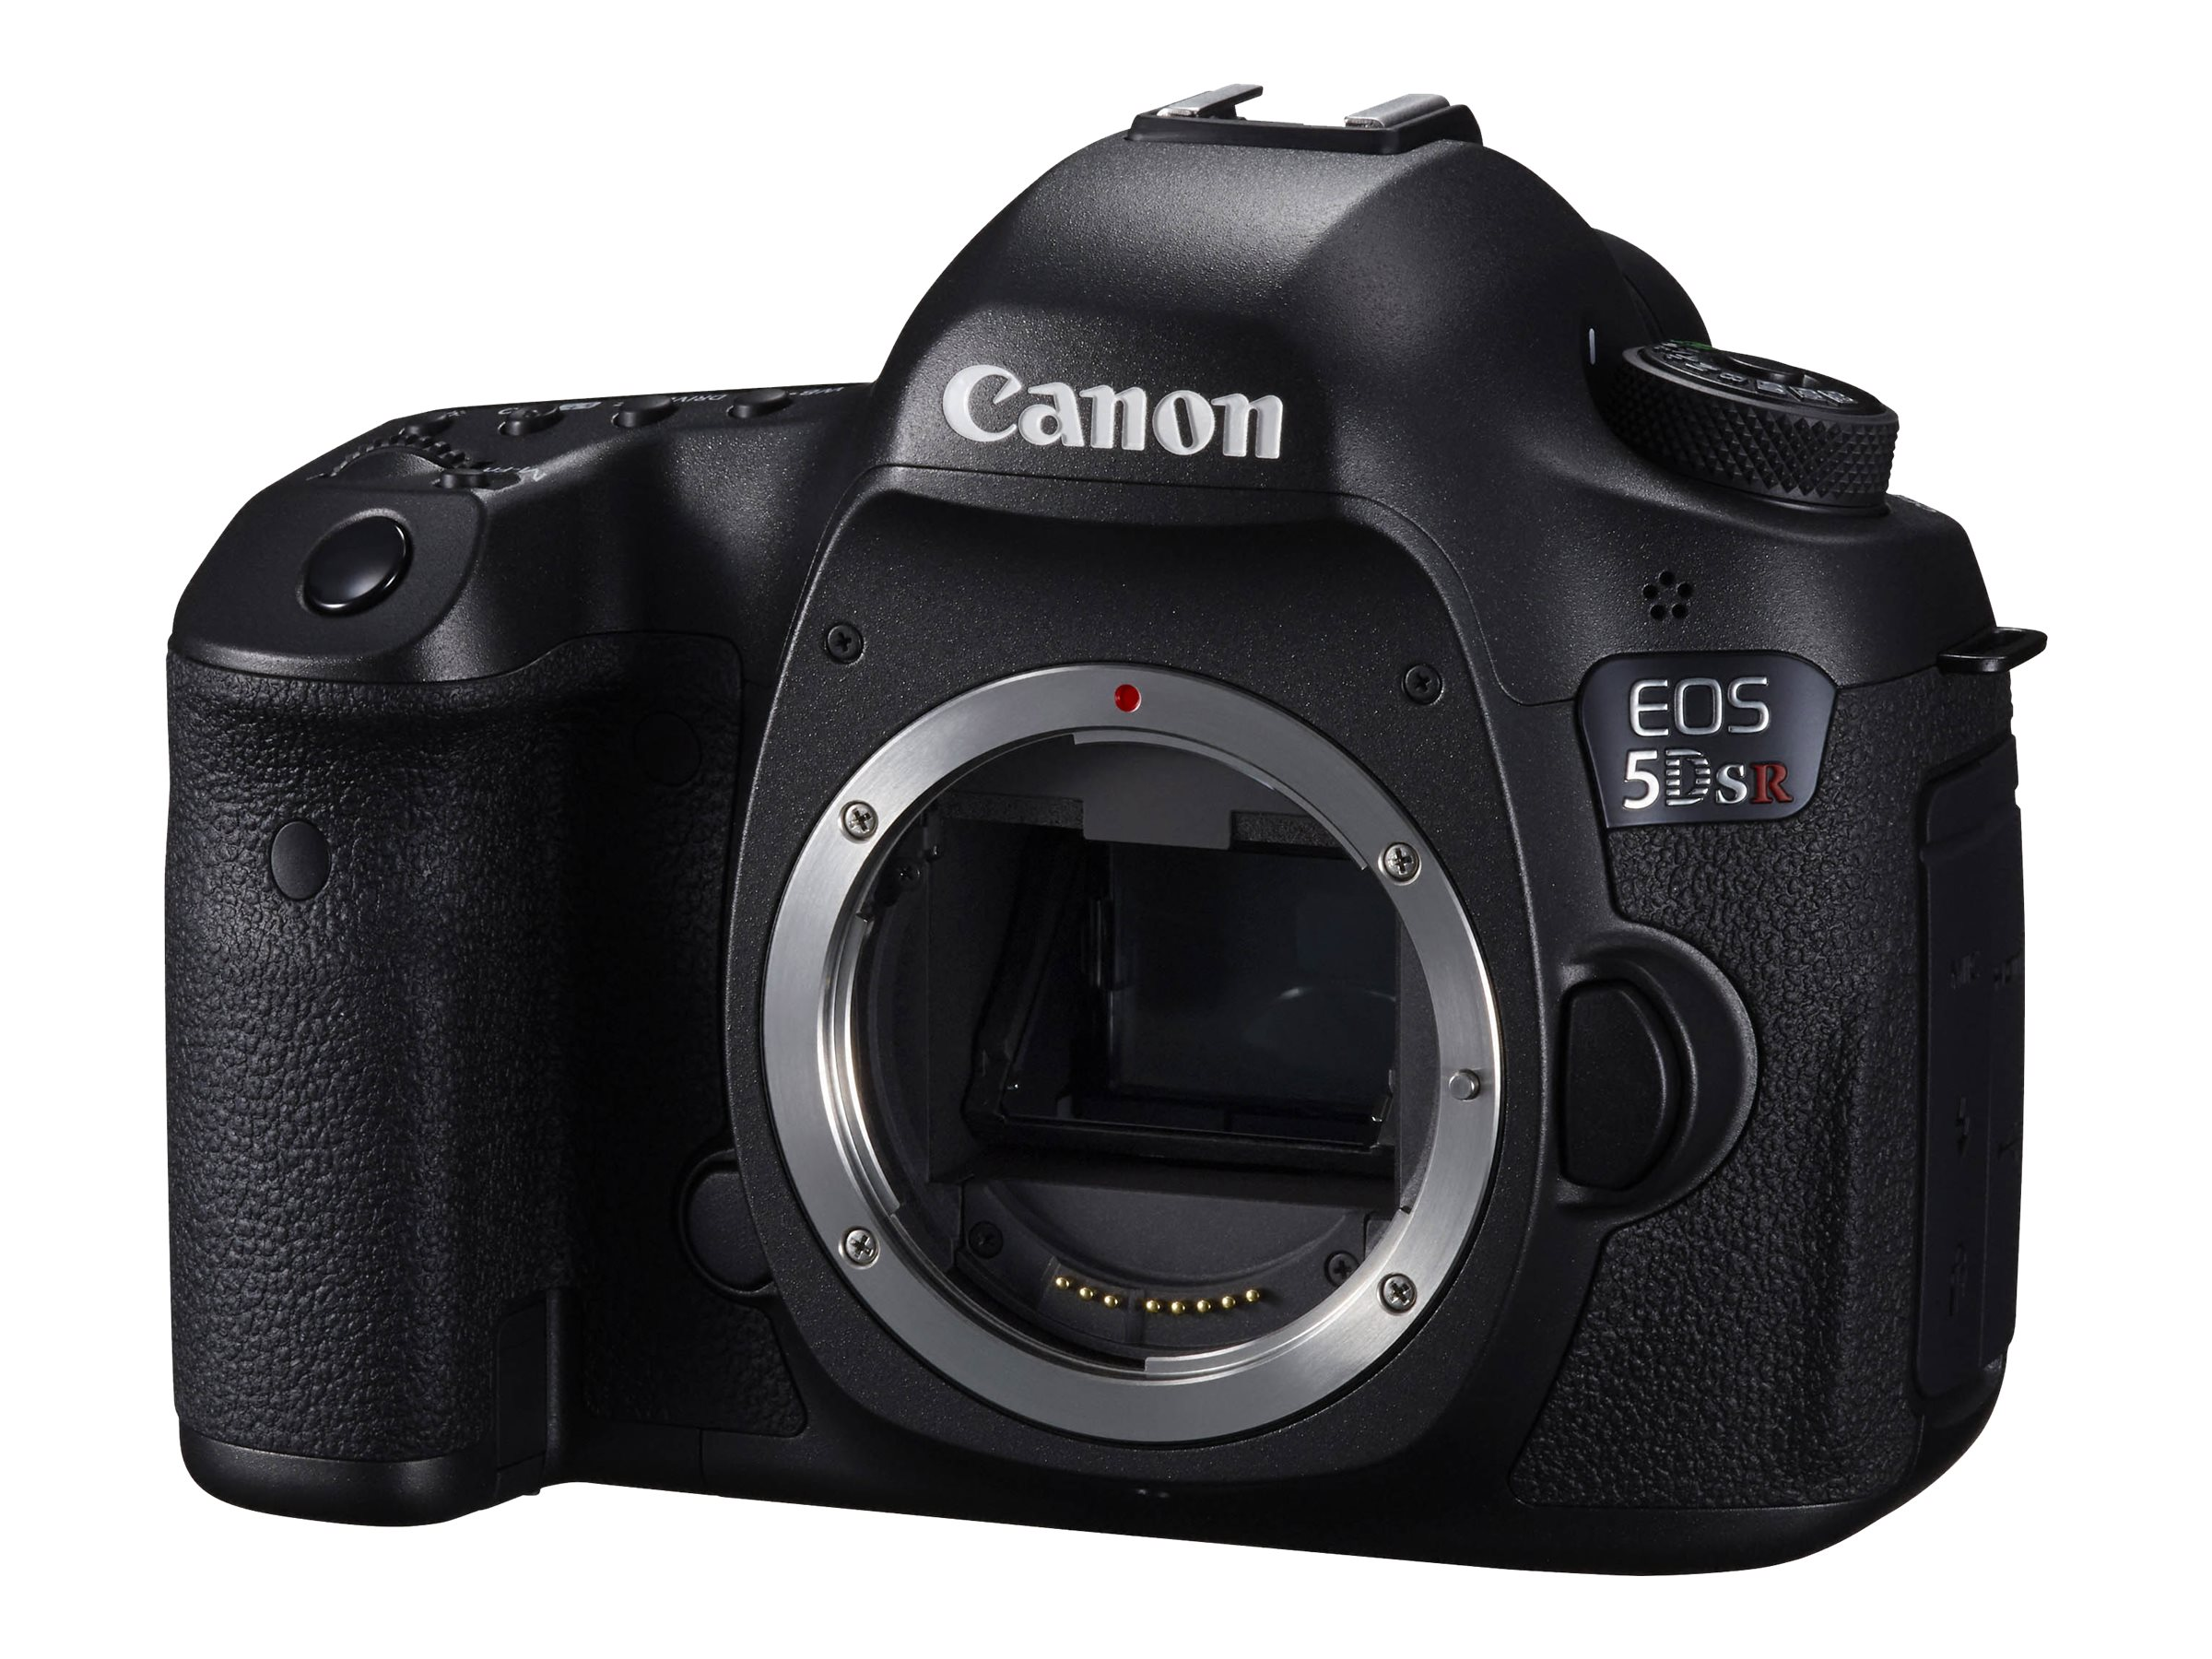 Canon EOS 5DS R Camera (Body Only), Black, 0582C002